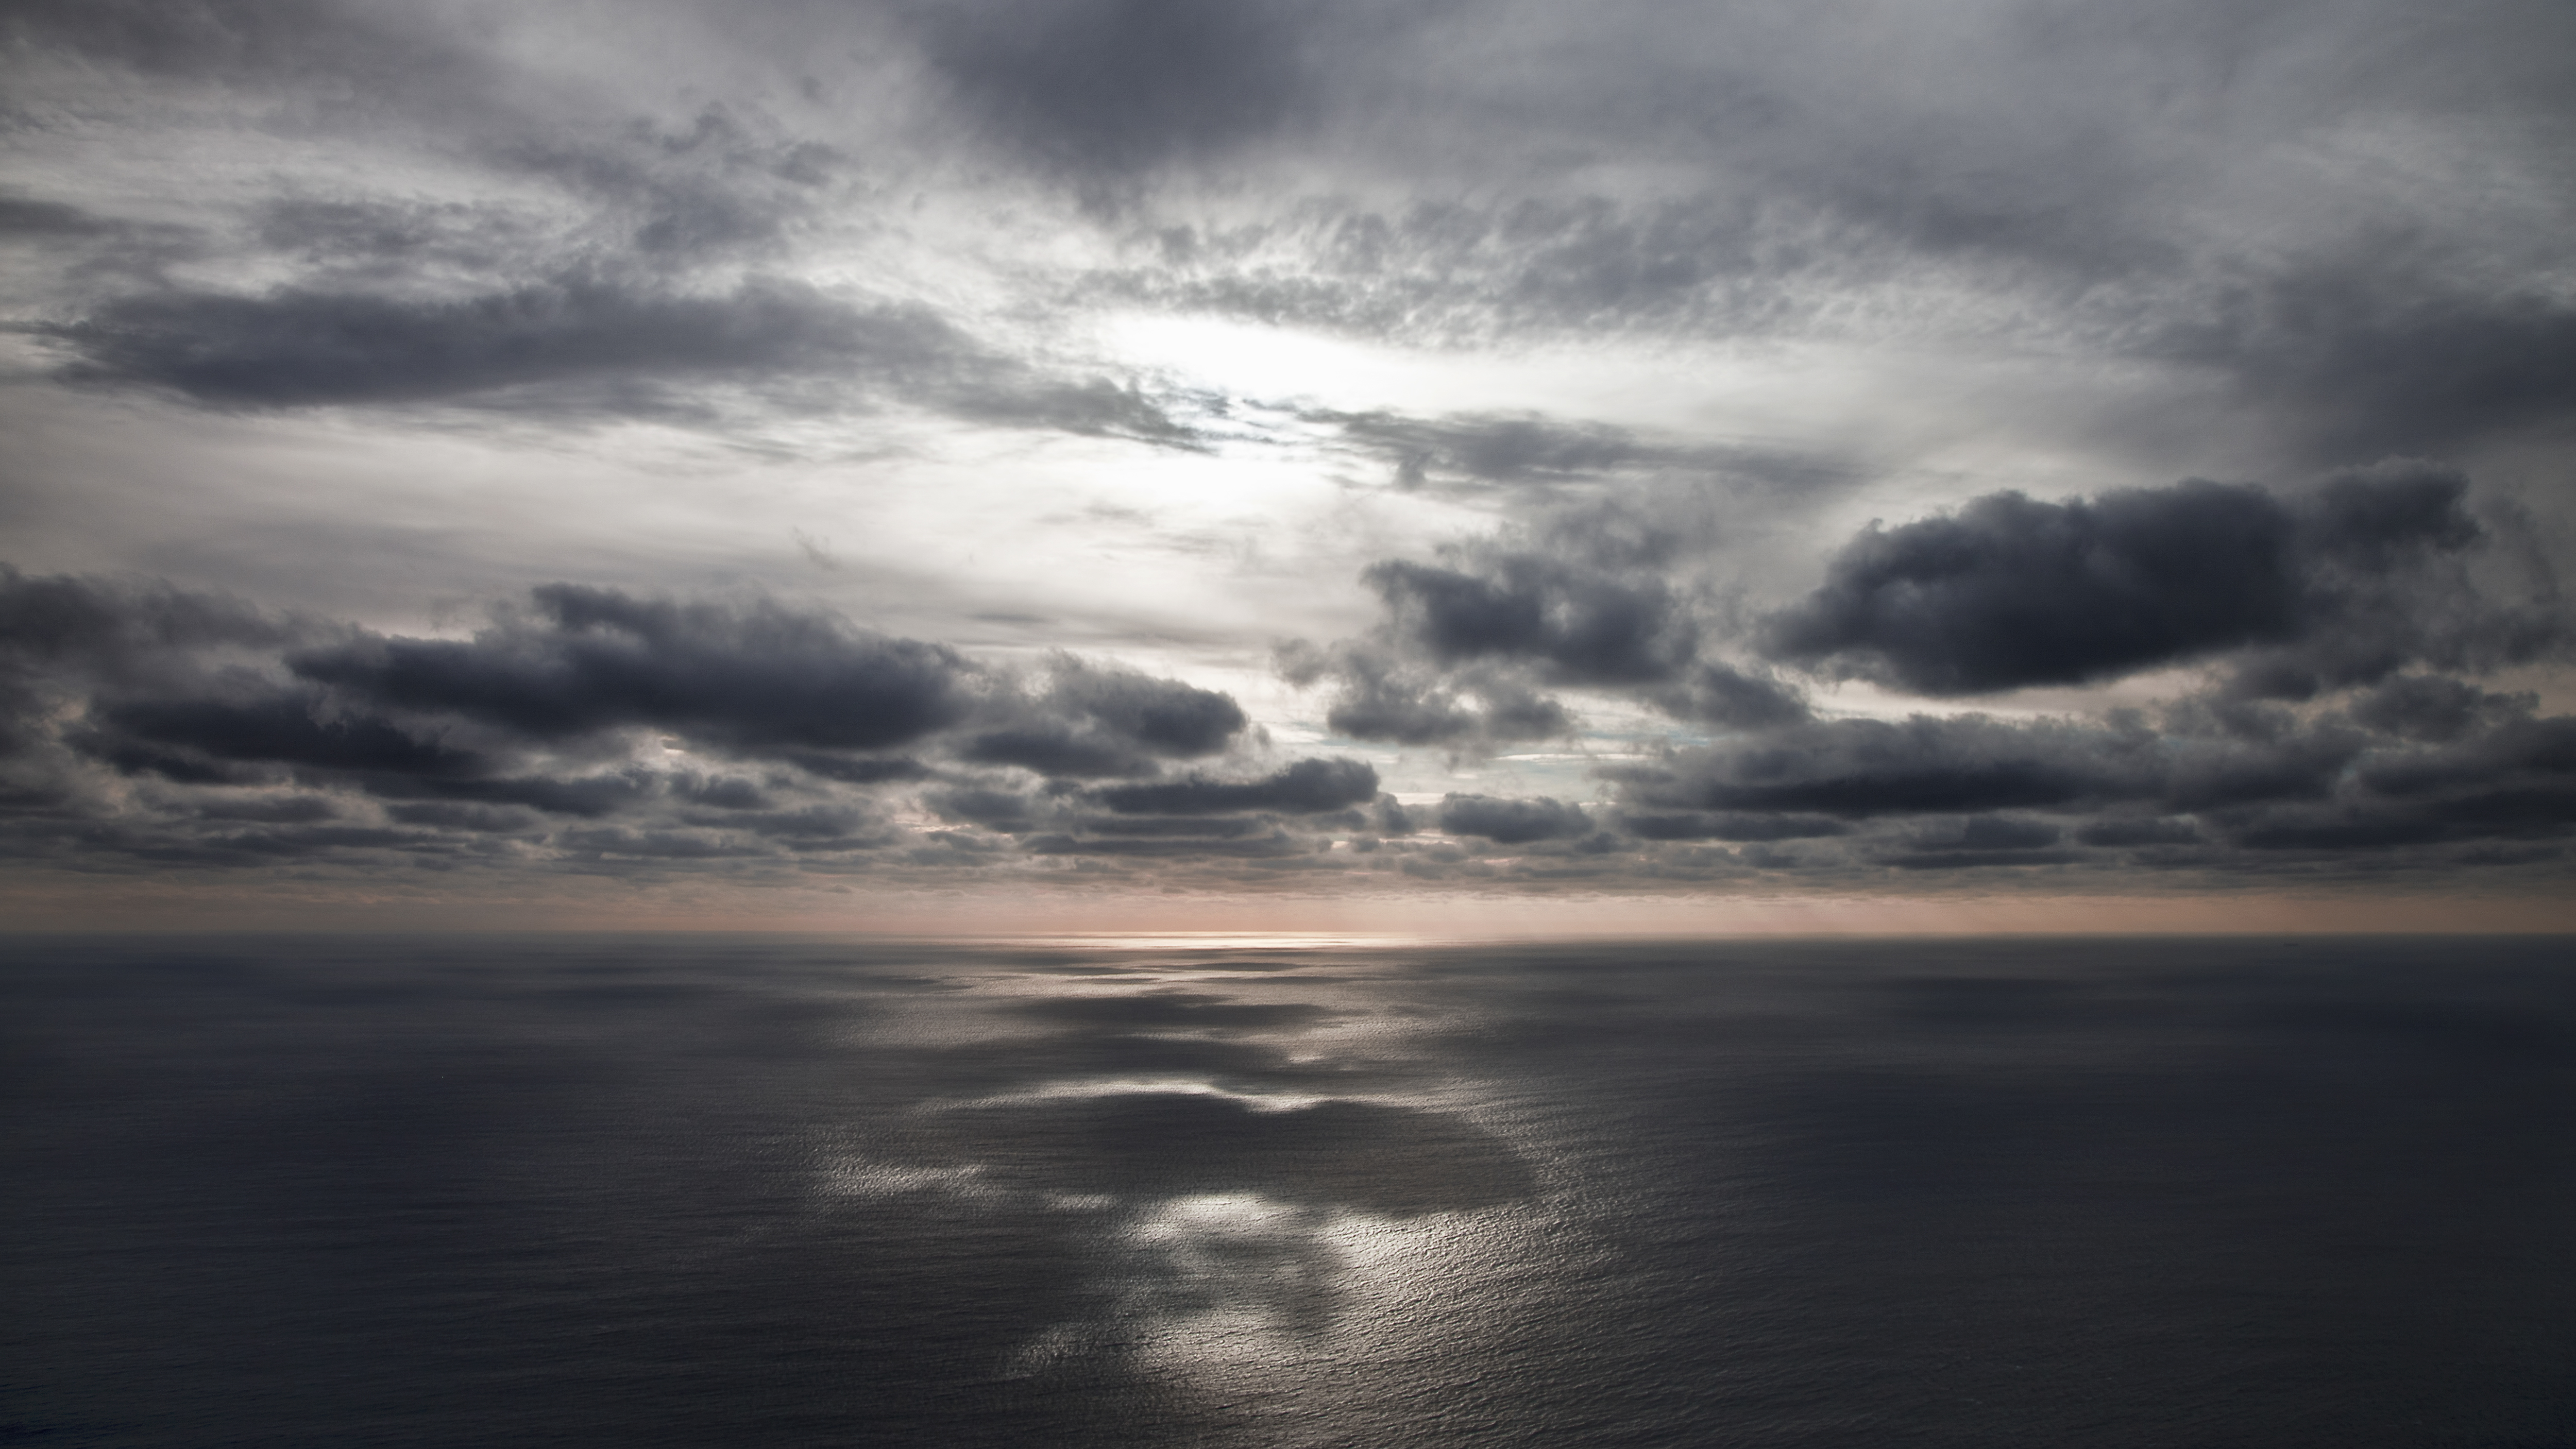 A distant sunset ocean horizon, dark clouds reflecting on the sea.